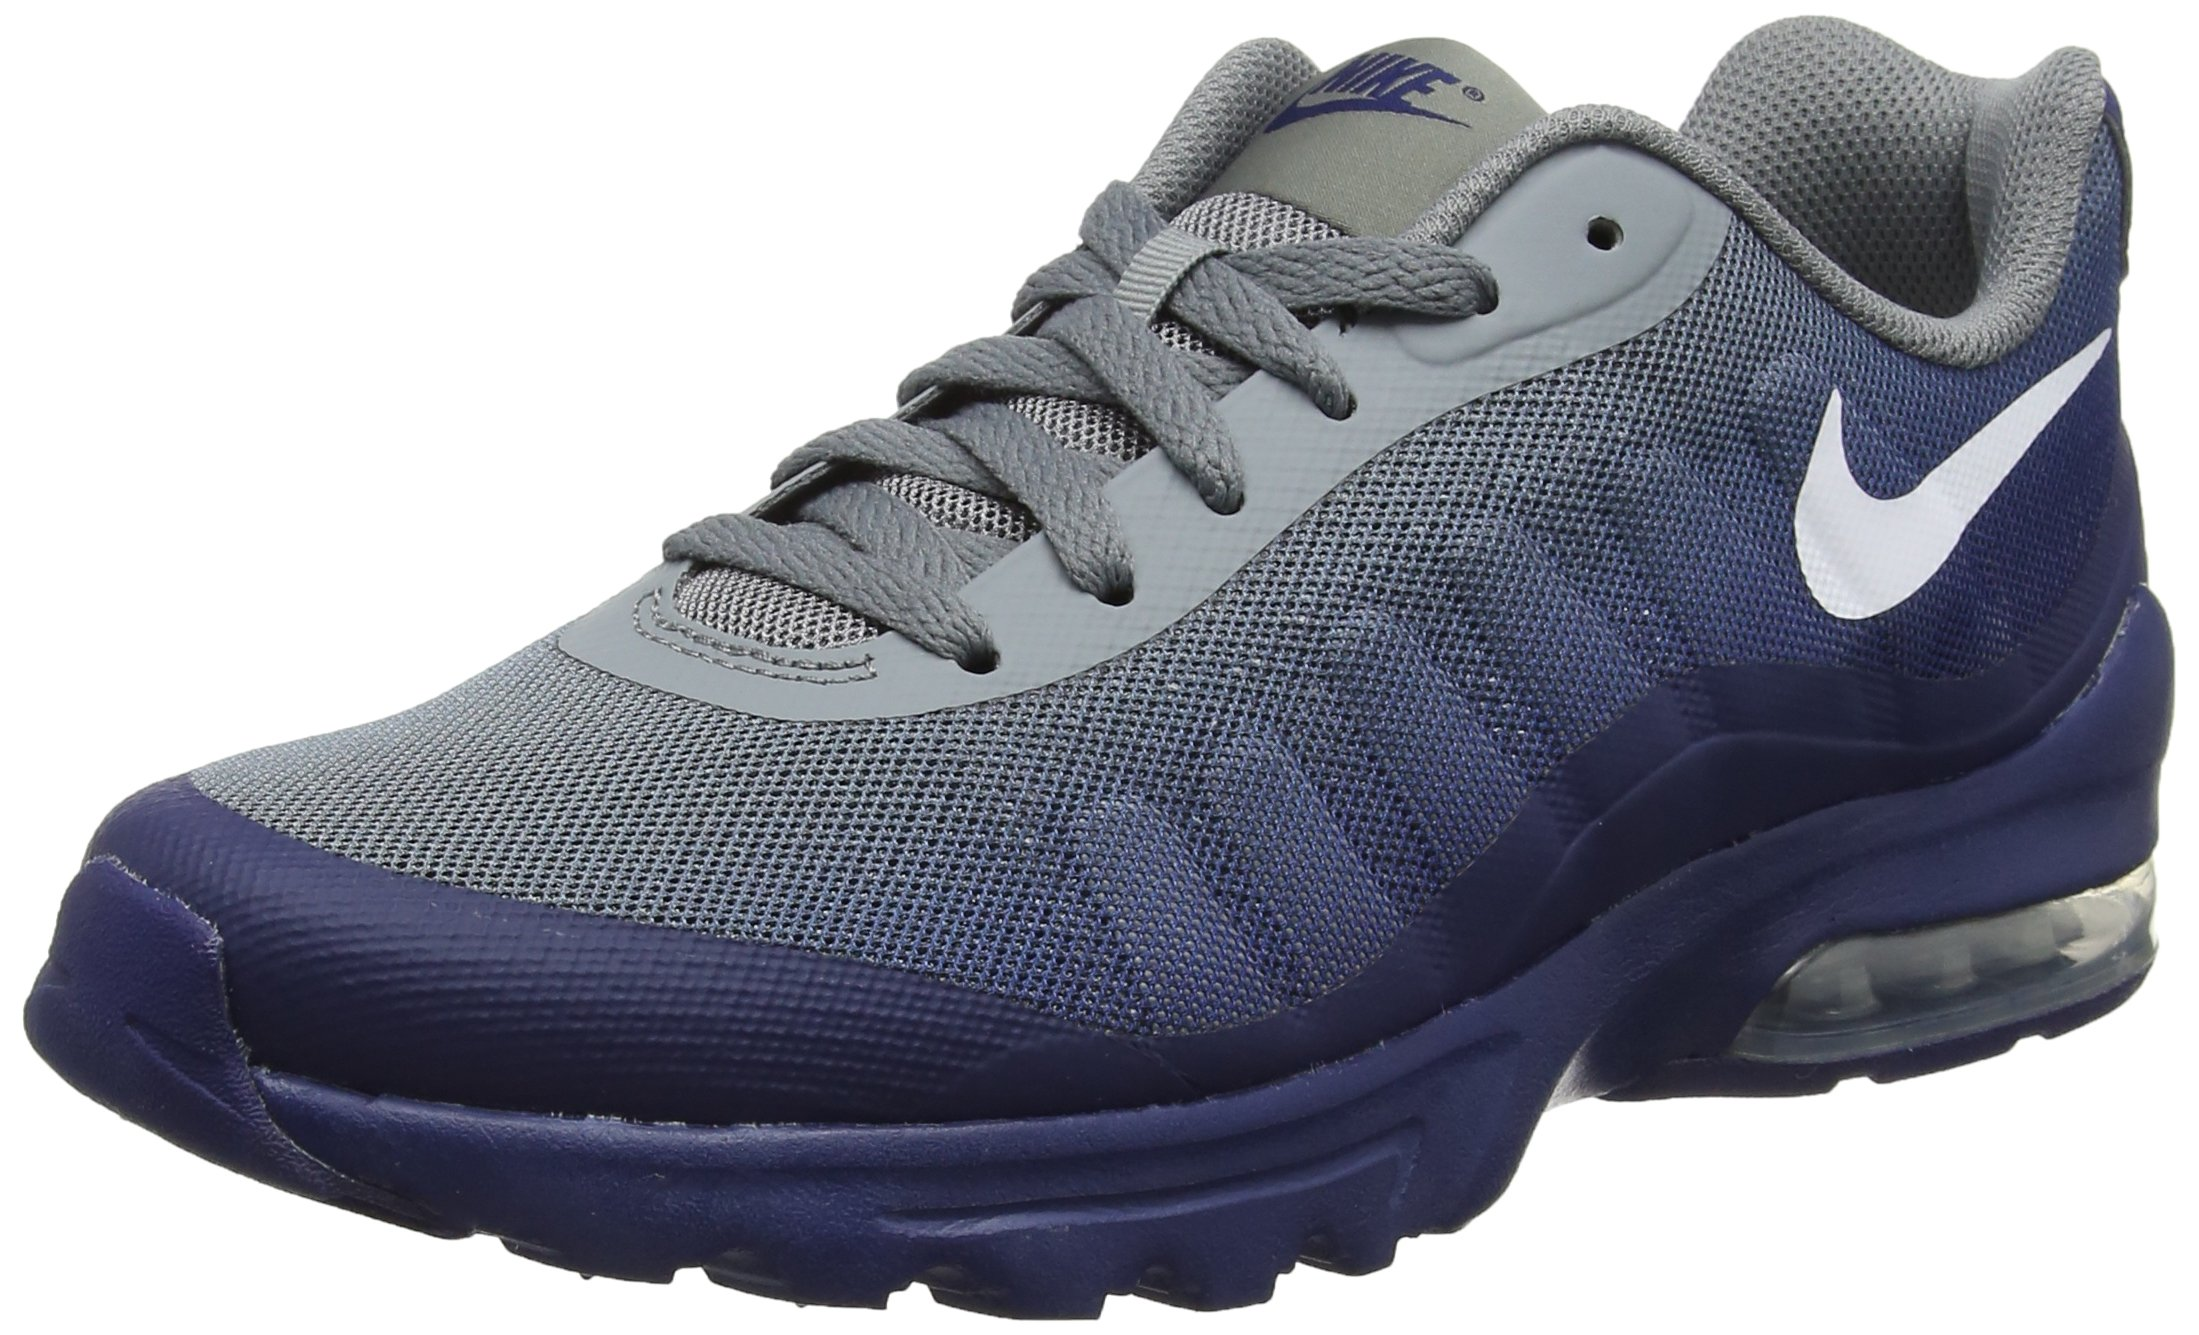 876fb83a26 Galleon - Nike Men's Air Max Invigor Print Shoe Cool Grey/White/Blue Void  Size 9.5 M US